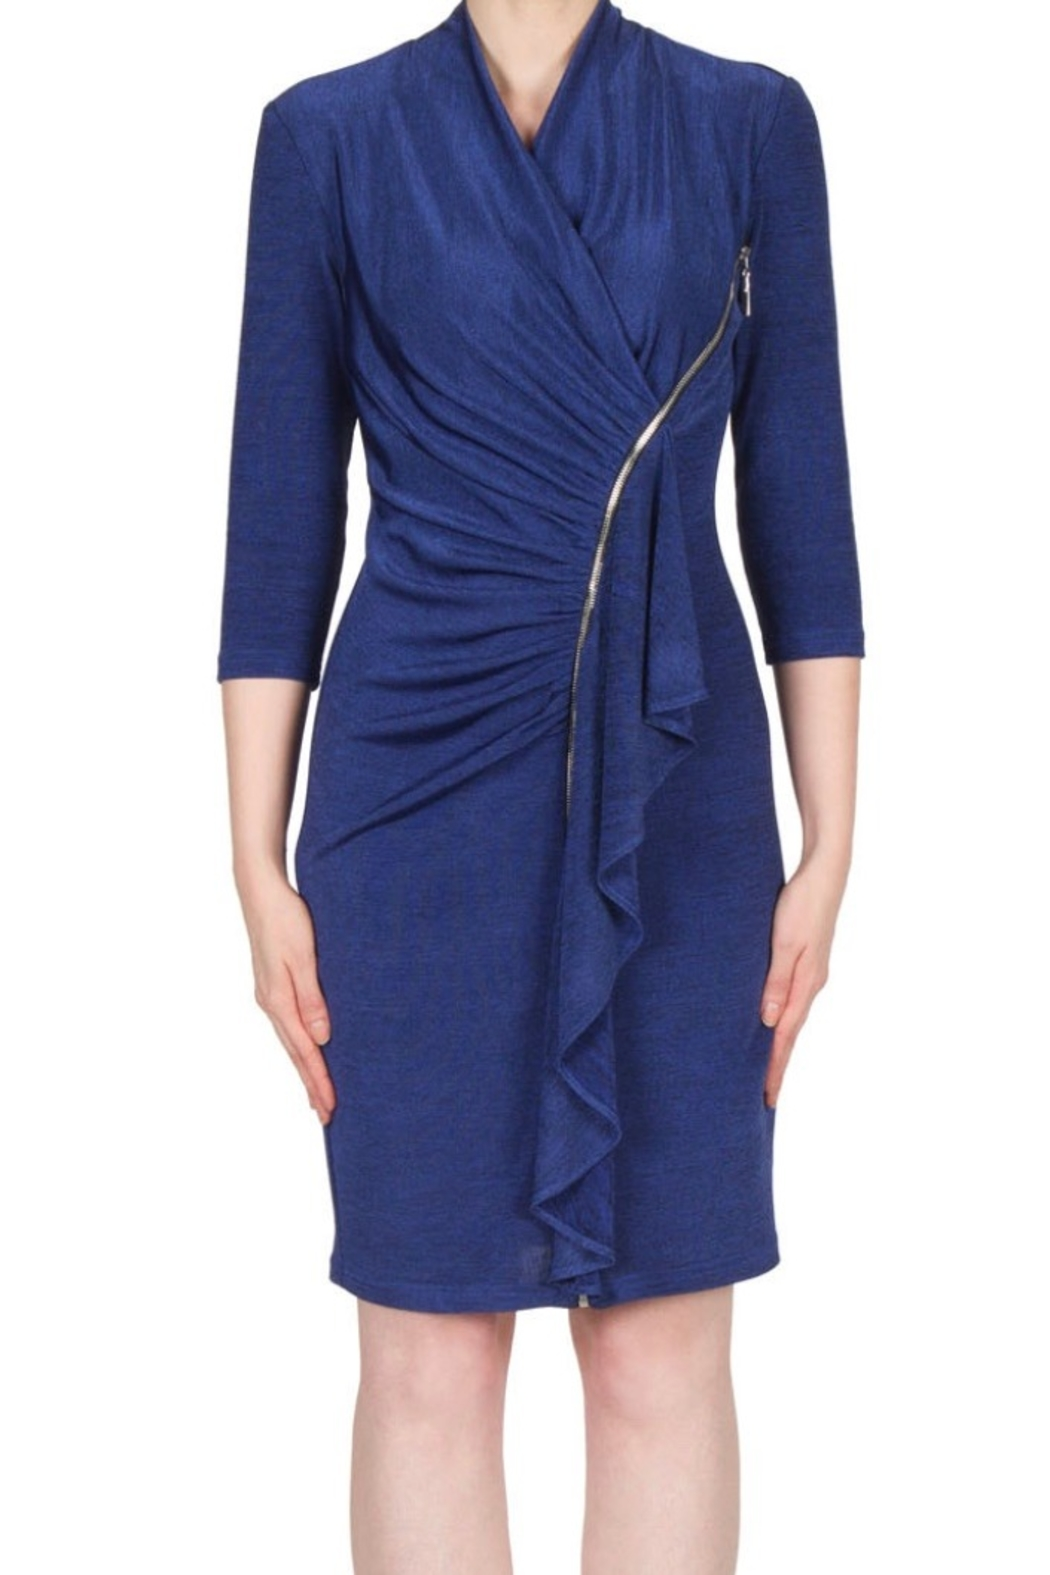 Joseph Ribkoff stunning fitted navy dress with zipper accent - Main Image